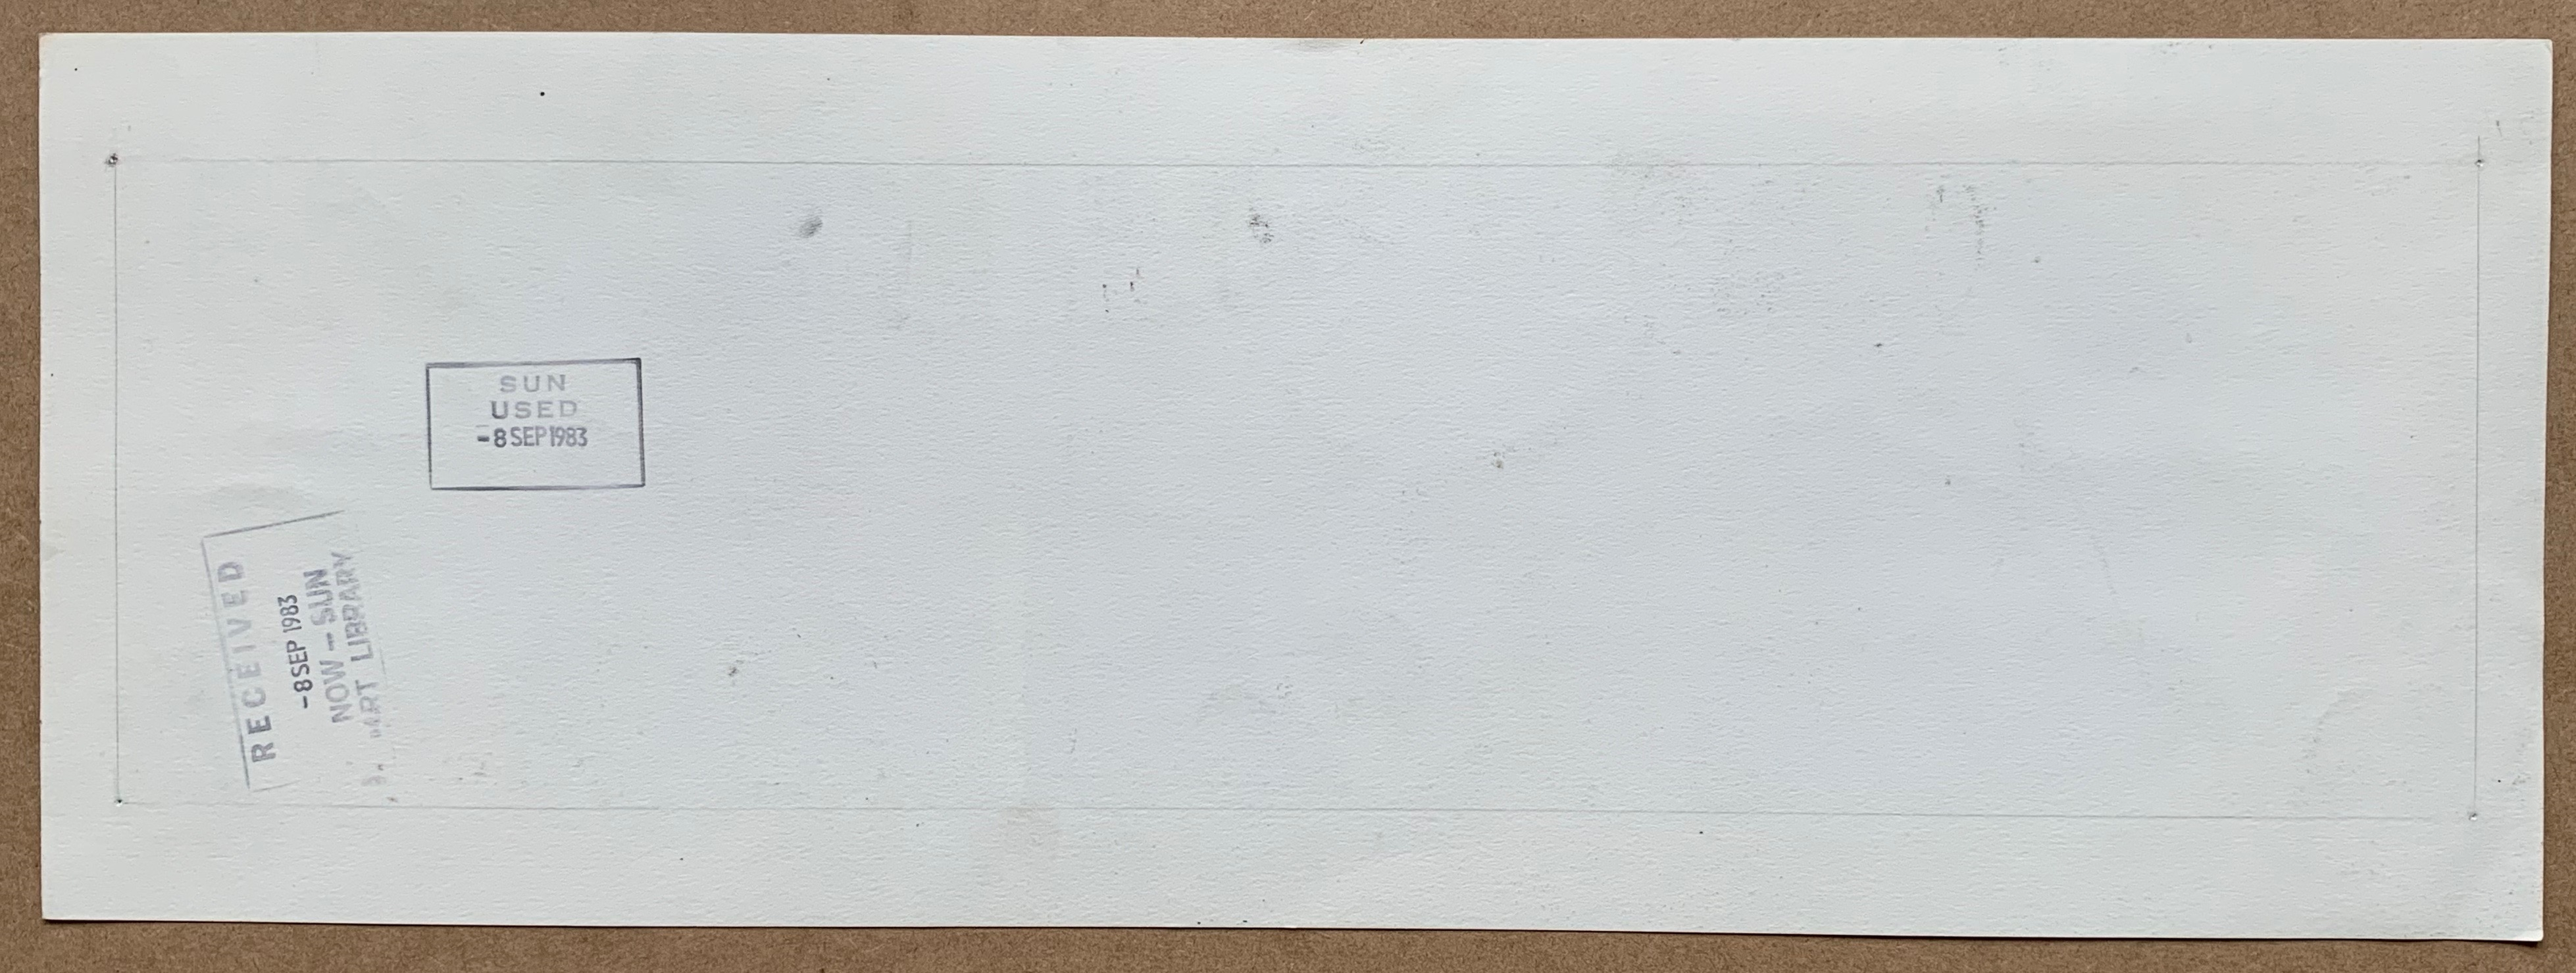 Lot 1626 - AXA (1983) - ORIGINAL ARTWORK by ROMERO, Enrique B